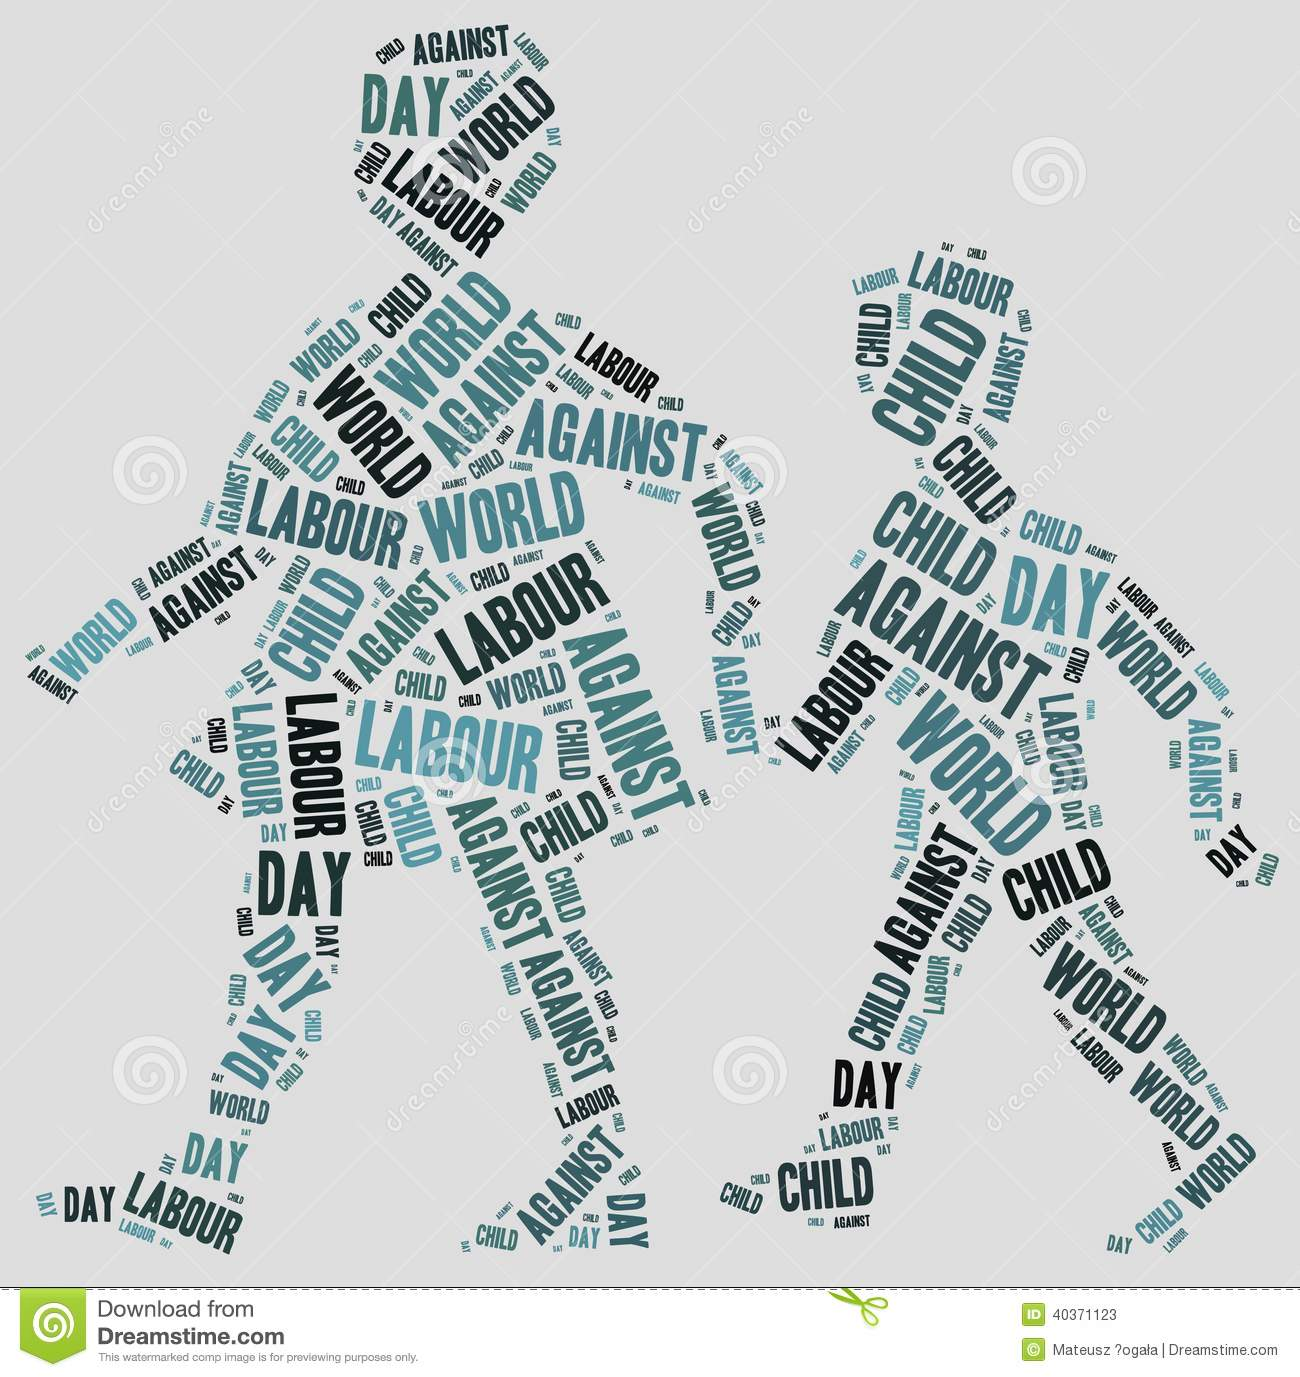 letter against child labour word cloud related to world day against child labour stock 19626 | word cloud related to world day against child labour tag 40371123